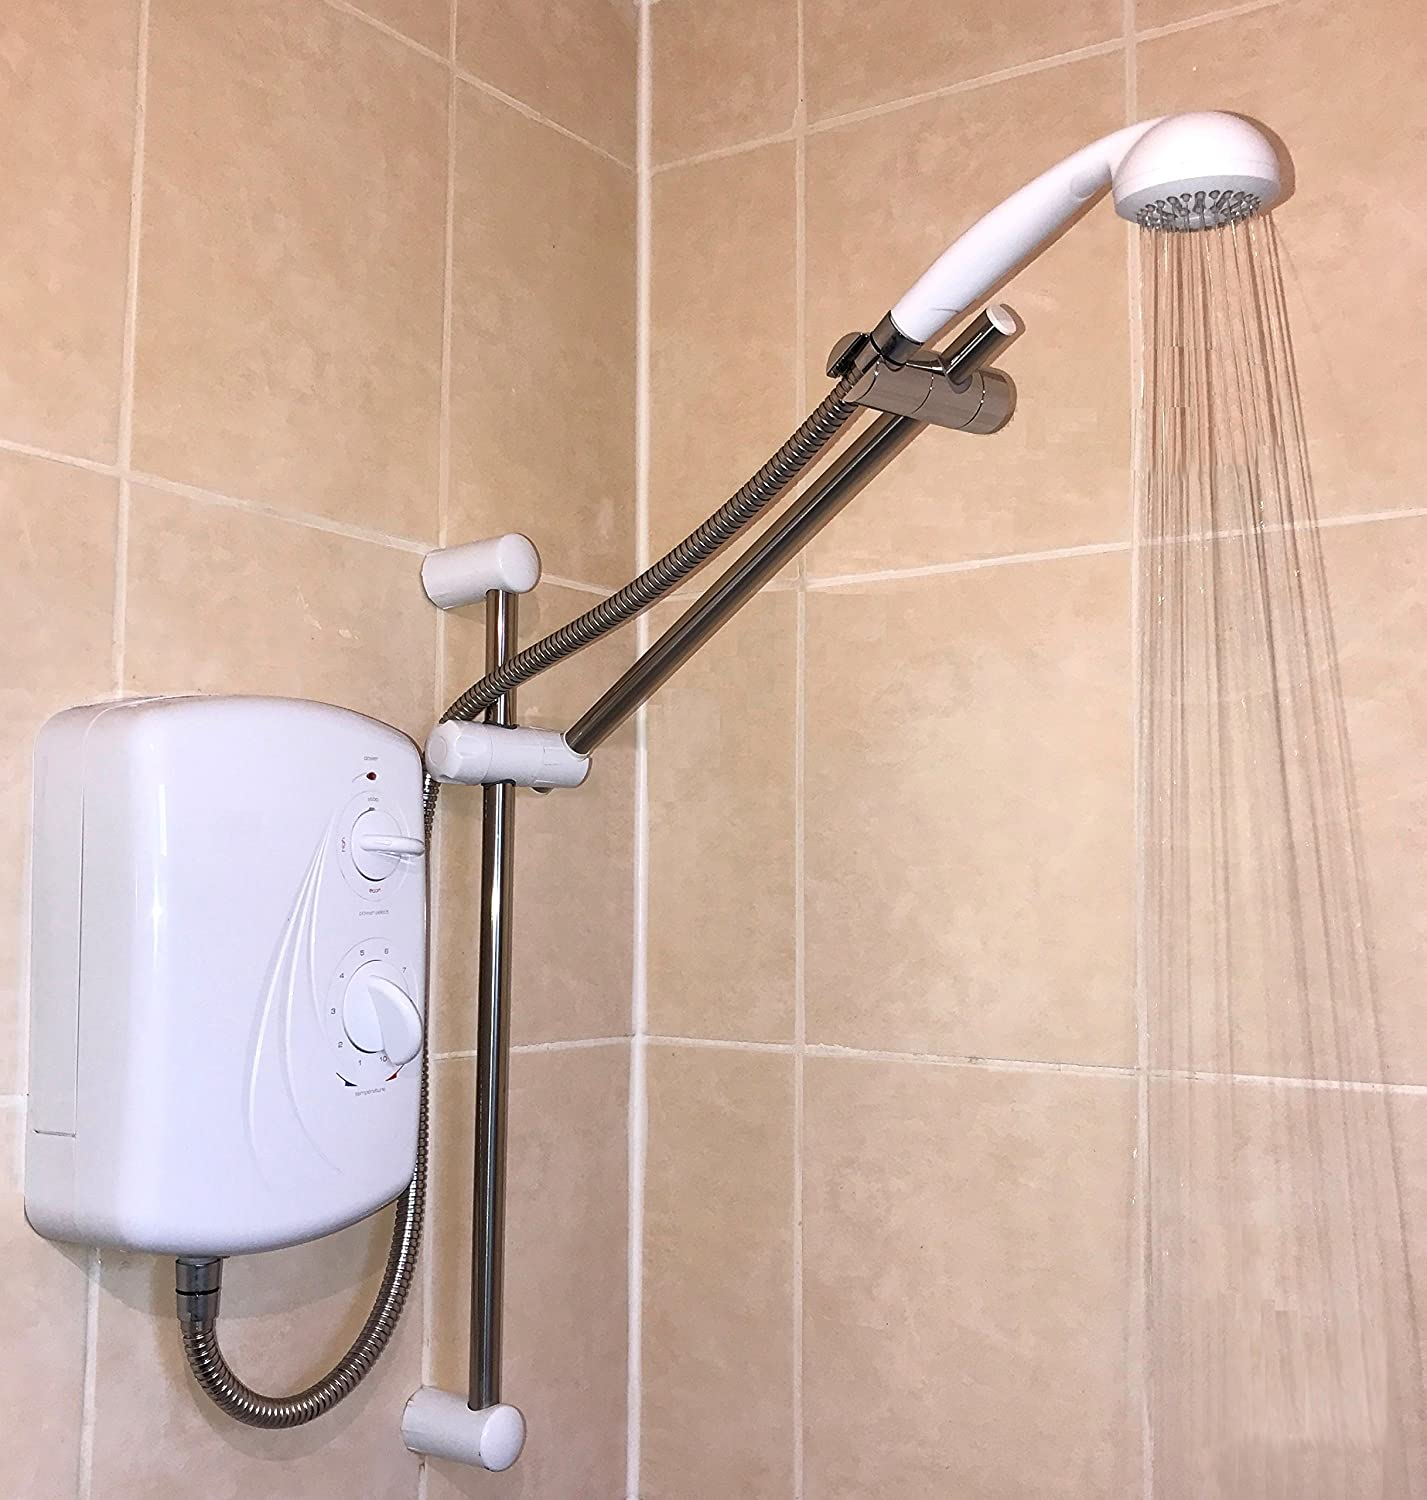 front mixers overhead taps axor en product head shower b by with arm